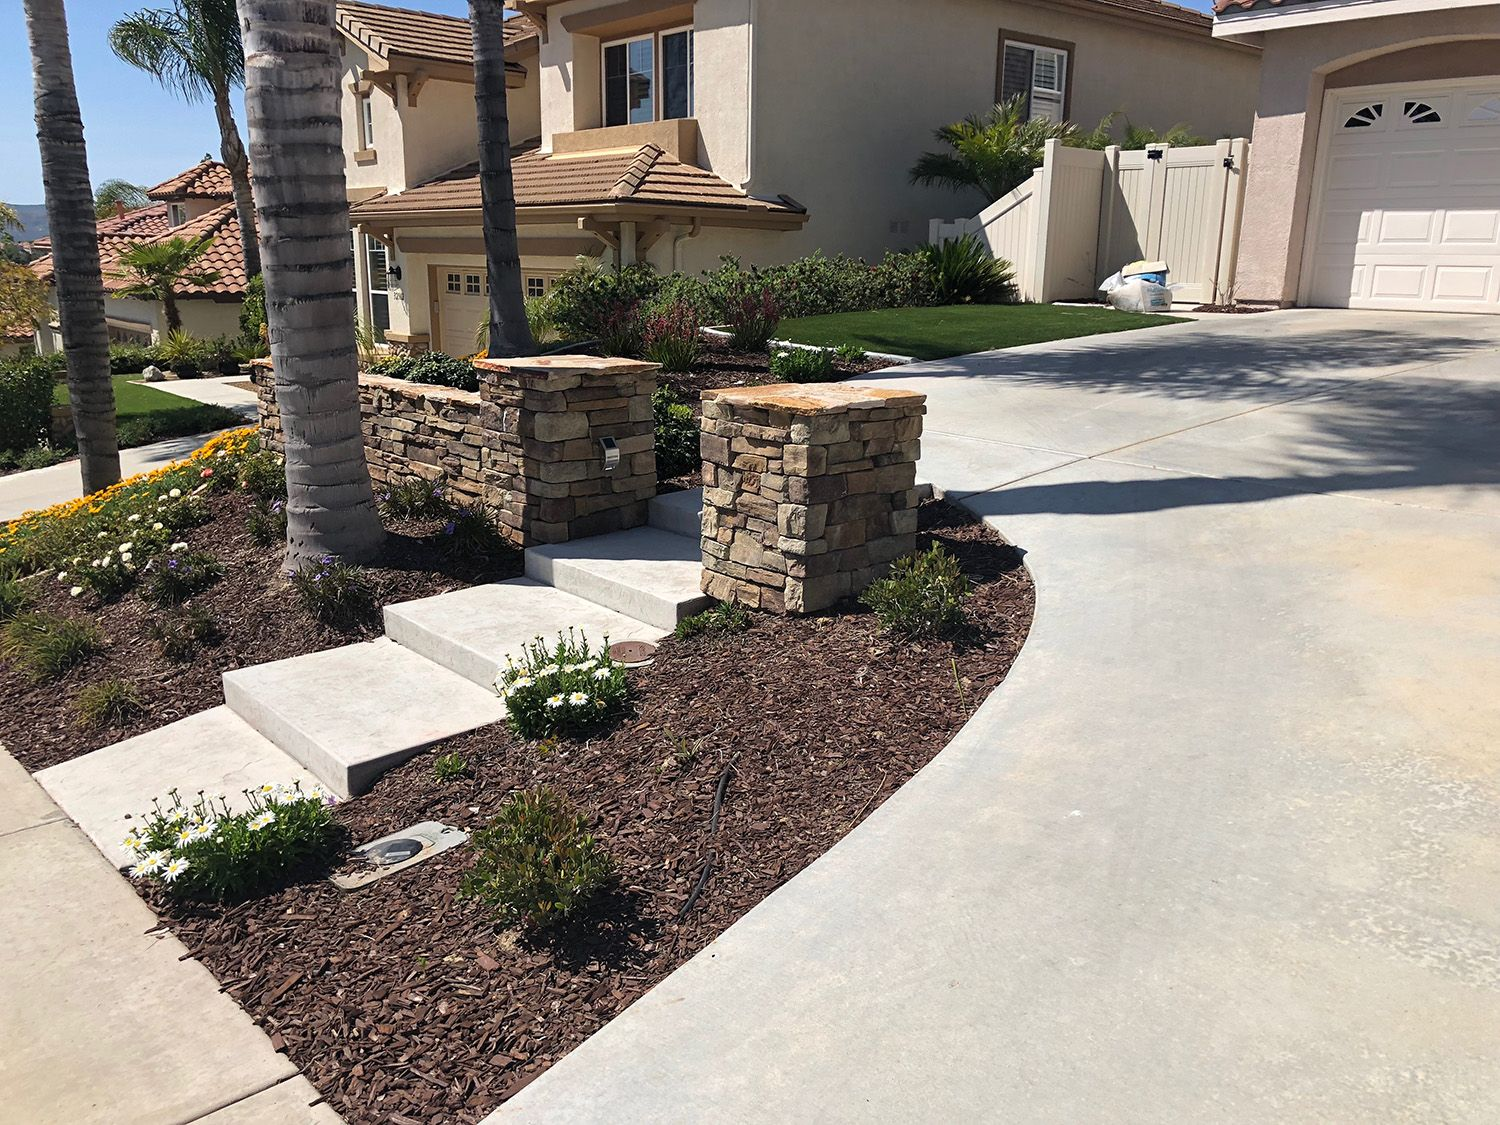 A Front Yard Landscape With Grey Stamped Concrete Steps Pilasters And Walls With Stone Facin Front House Landscaping Front Yard Landscaping Yard Landscaping